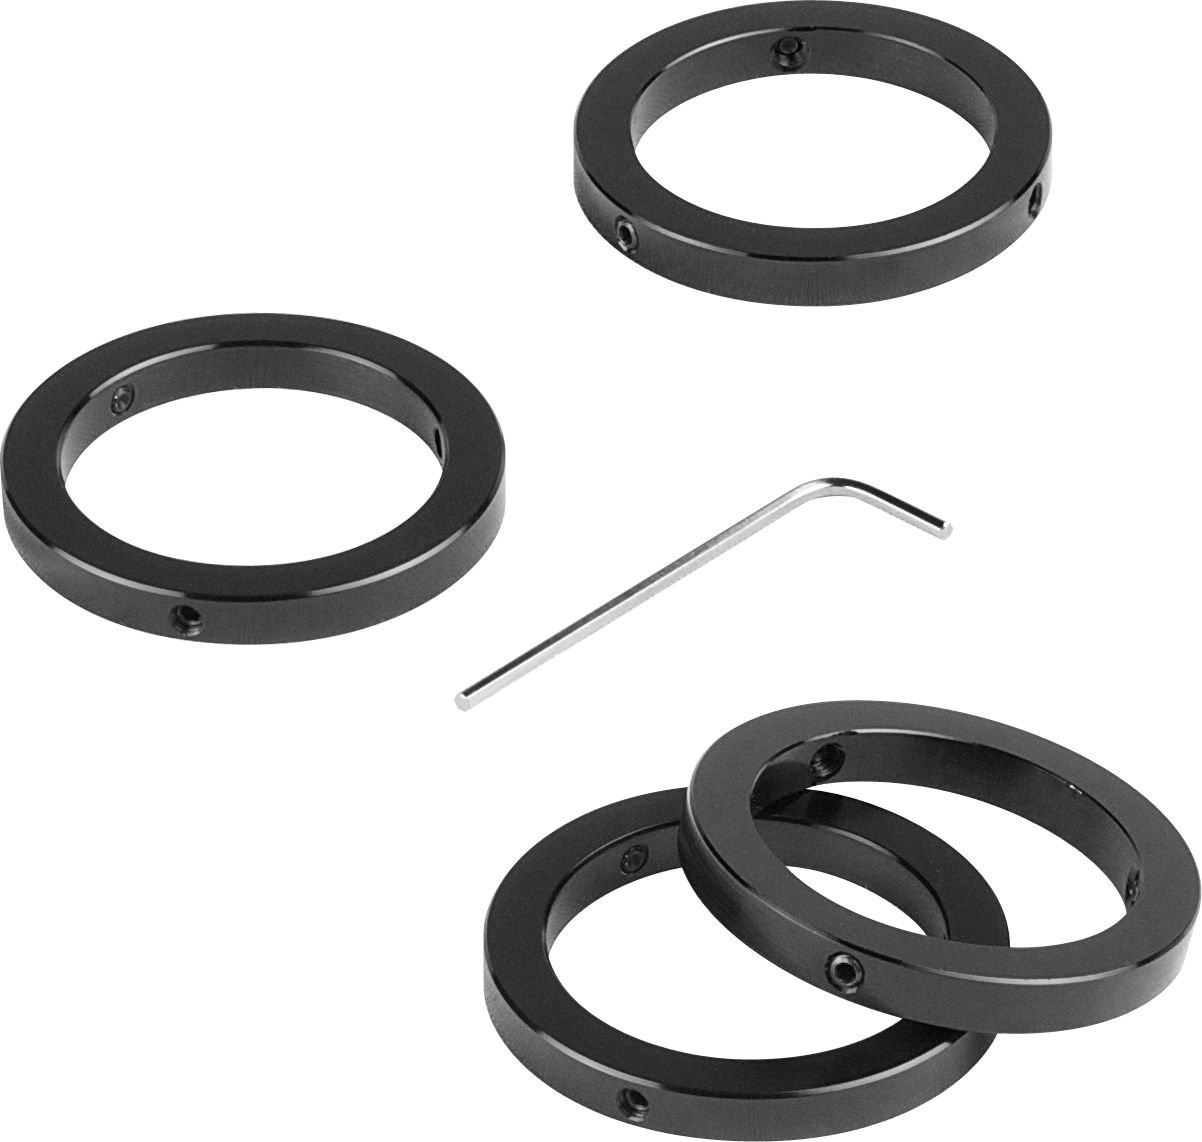 1.25inch Orion Telescope Eyepiece Parfocal Rings, Set of Four